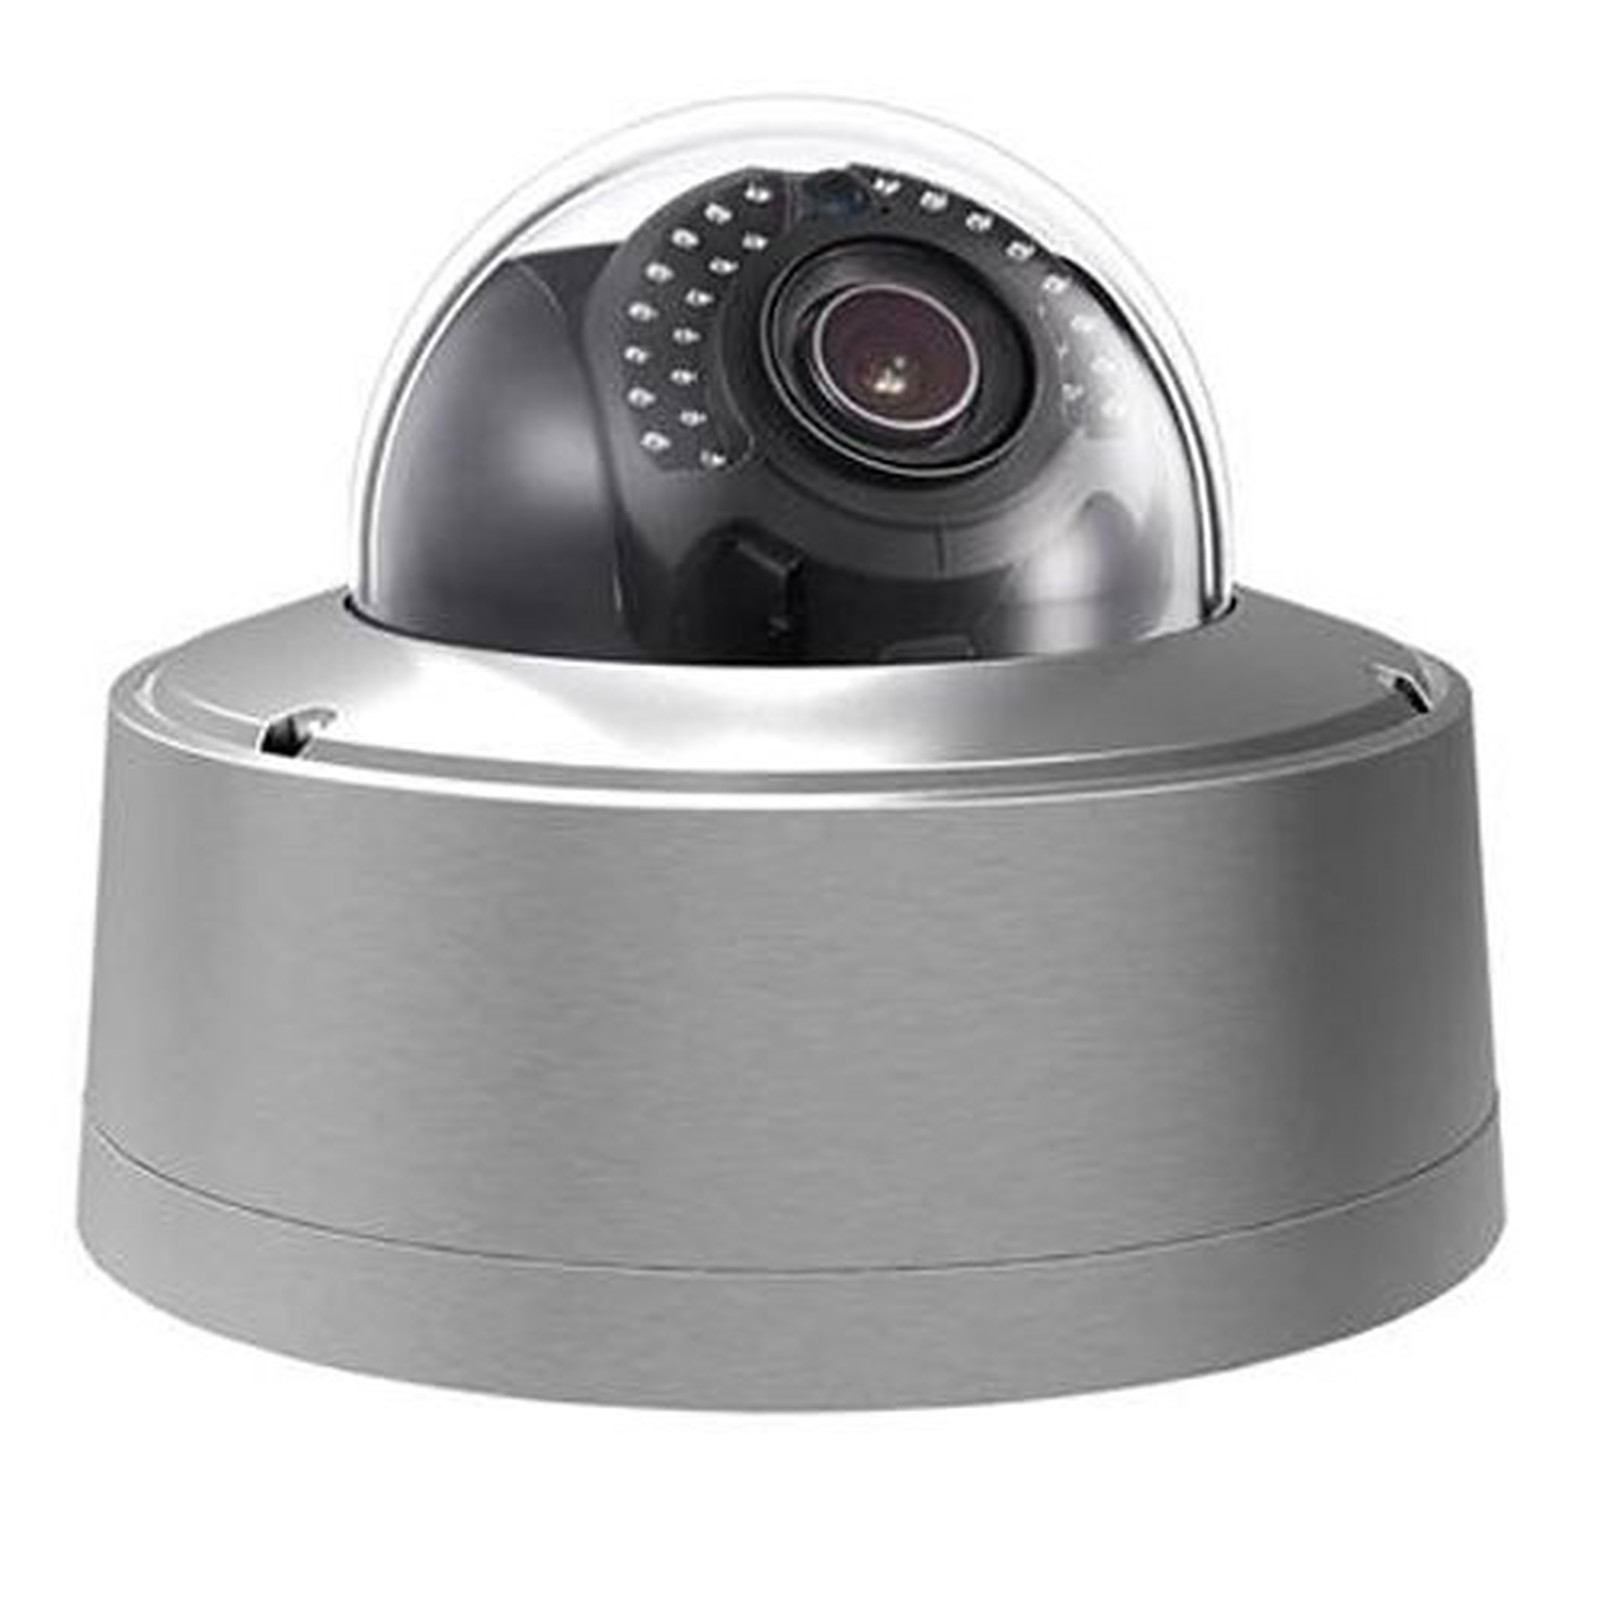 Camera Ip Exterieur Hikvision Wifi Hikvision Ds 2cd6626ds Izhs 2 8 12mm Caméra Ip Hikvision